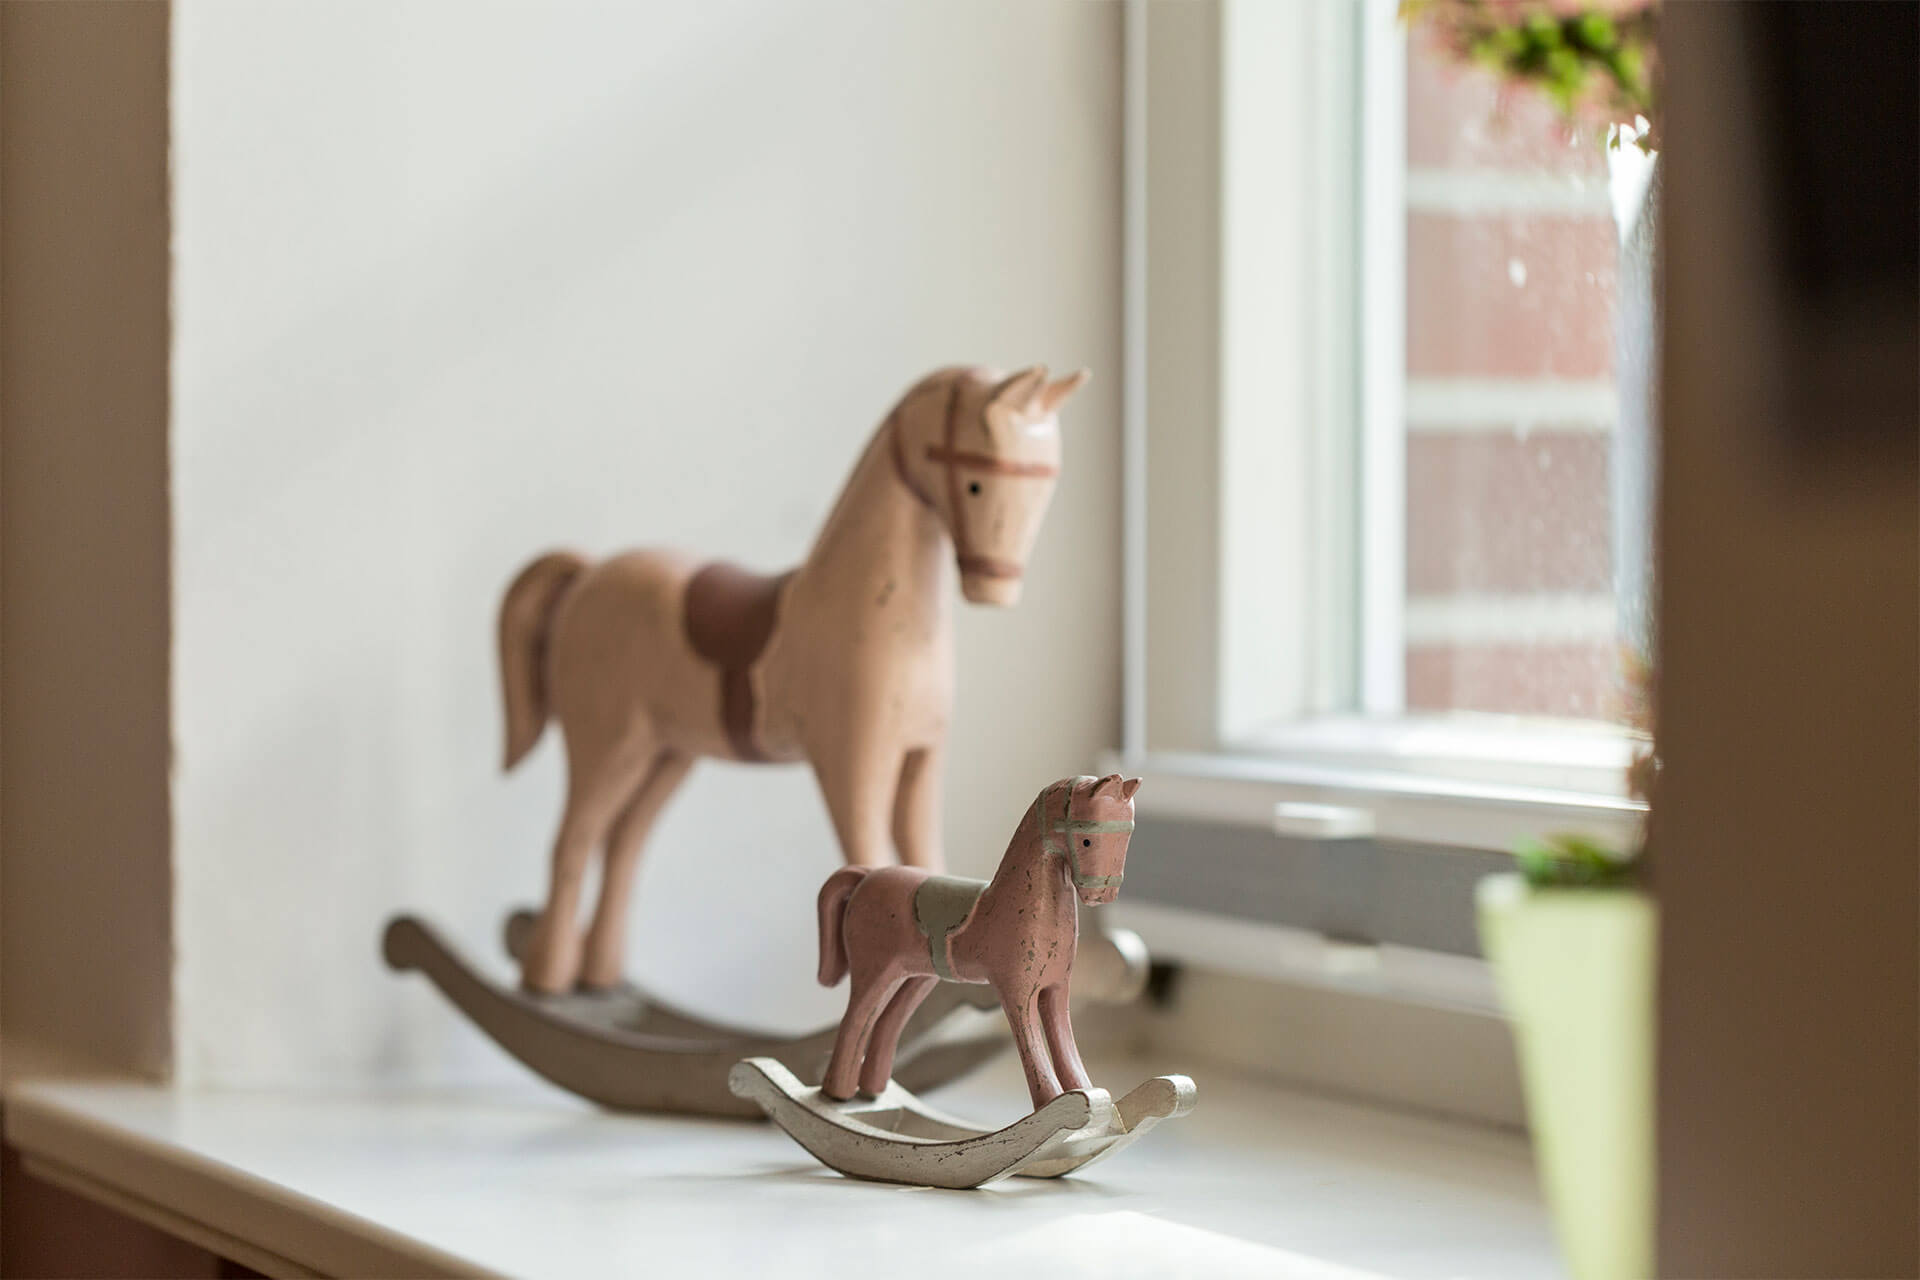 decoration horses by decotable in the apartments in the showjumping school near Hamburg